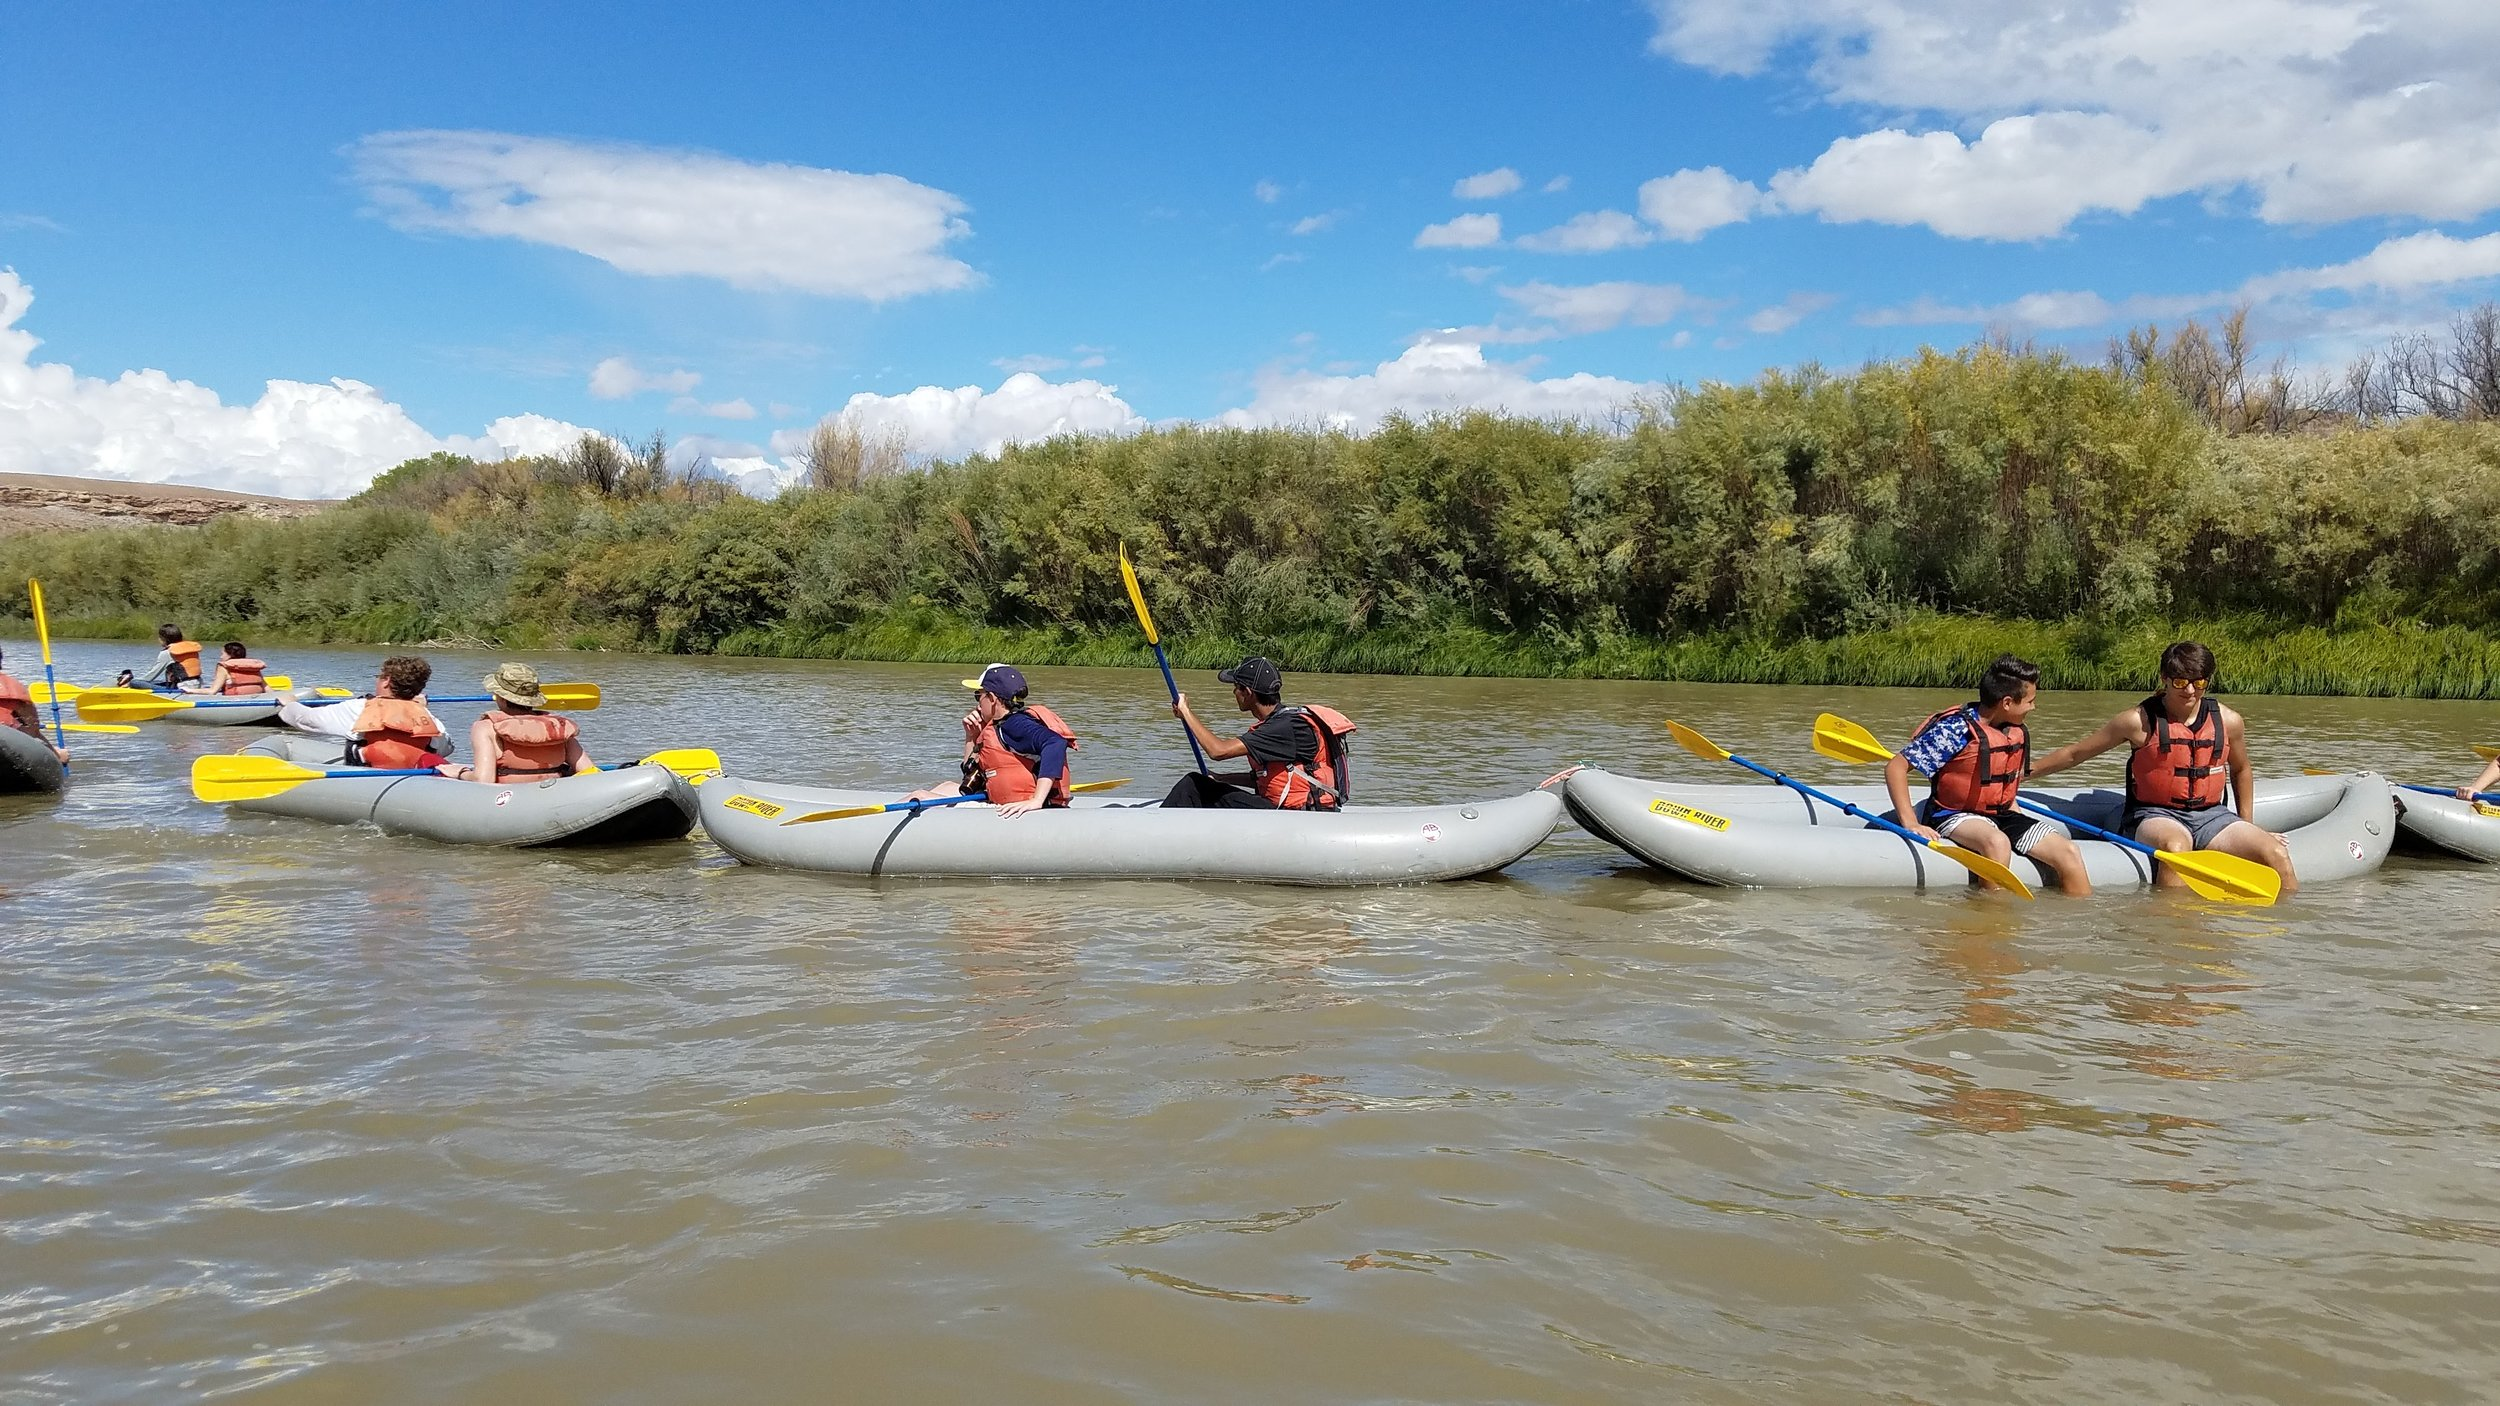 Over the course of the two-day trip,students not only paddled the canyon together, but they also worked together to build and test hypotheses regarding the relationship between damming/irrigation and water quality, hydrology, and vegetative systems in the canyons.